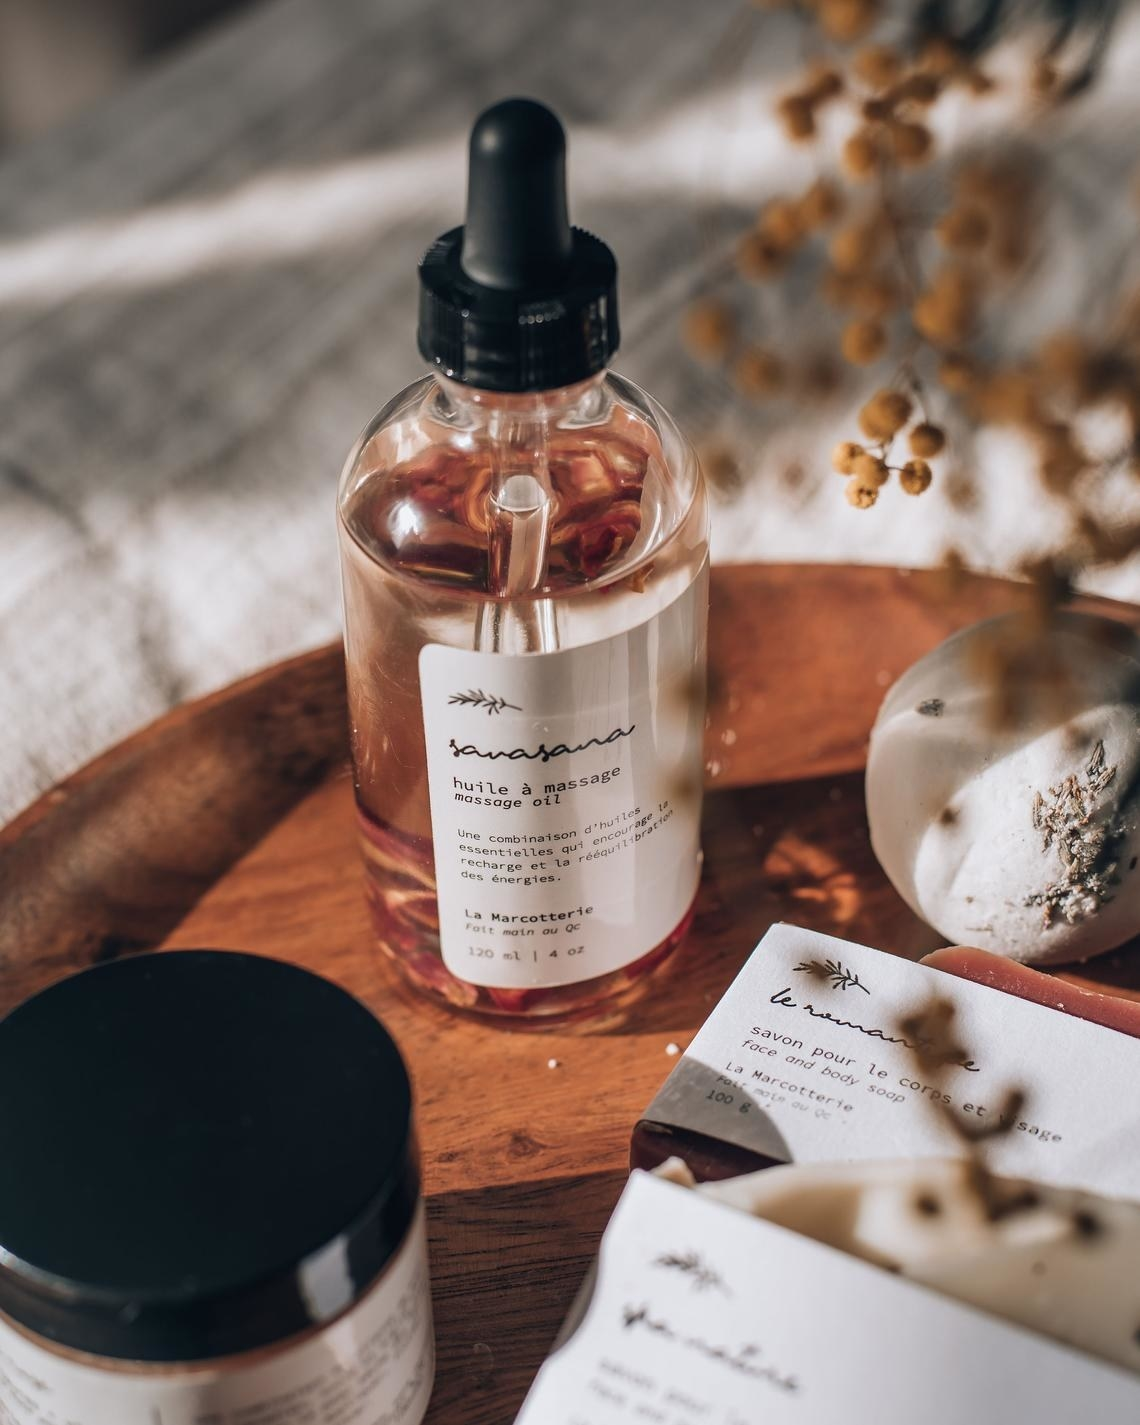 The massage oil on a wooden tray next to other miscellaneous toiletries